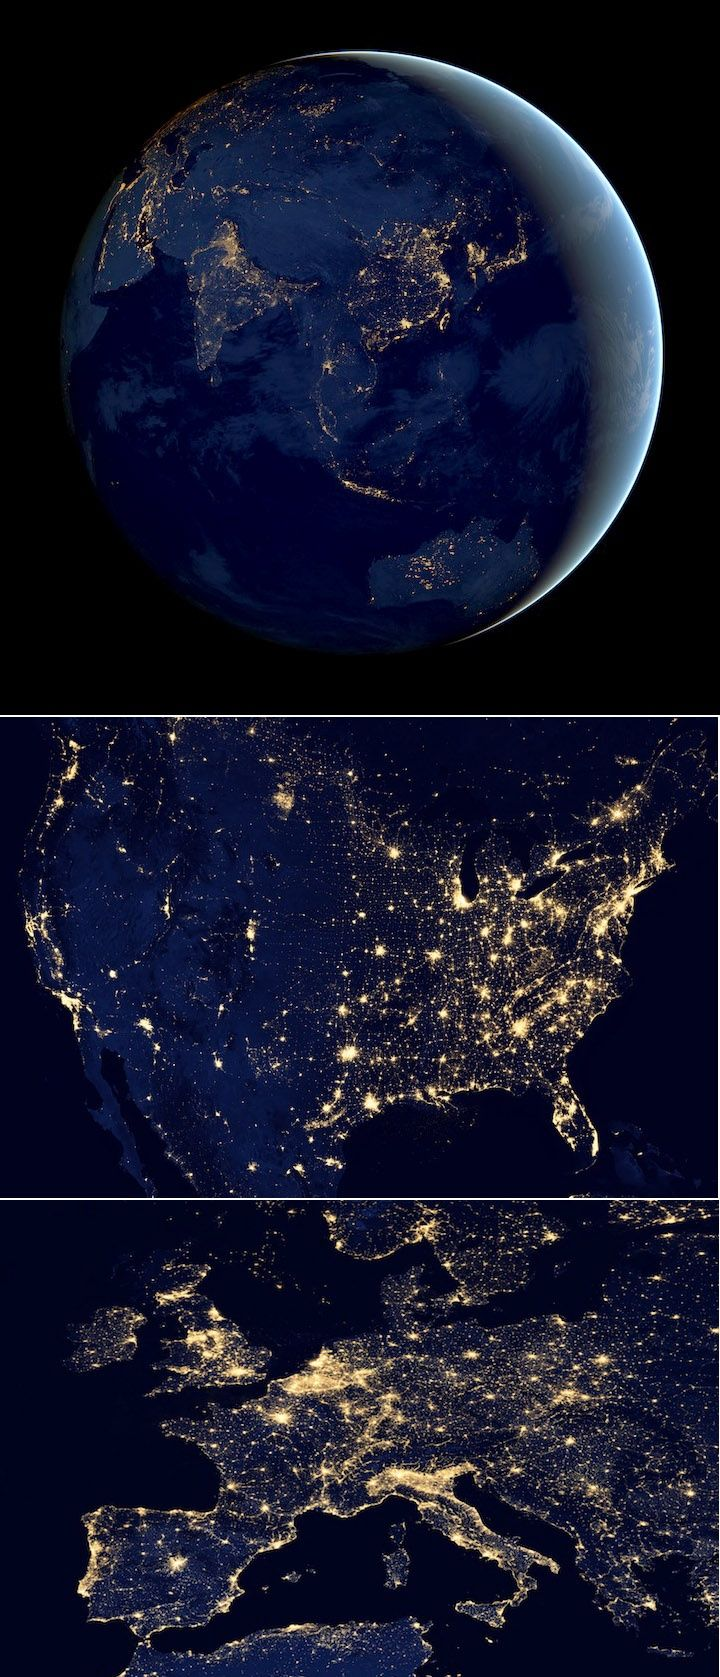 Nasa Images of earth. I think it looks really nice with the lights showing. It is a great contrast to the dark sky.